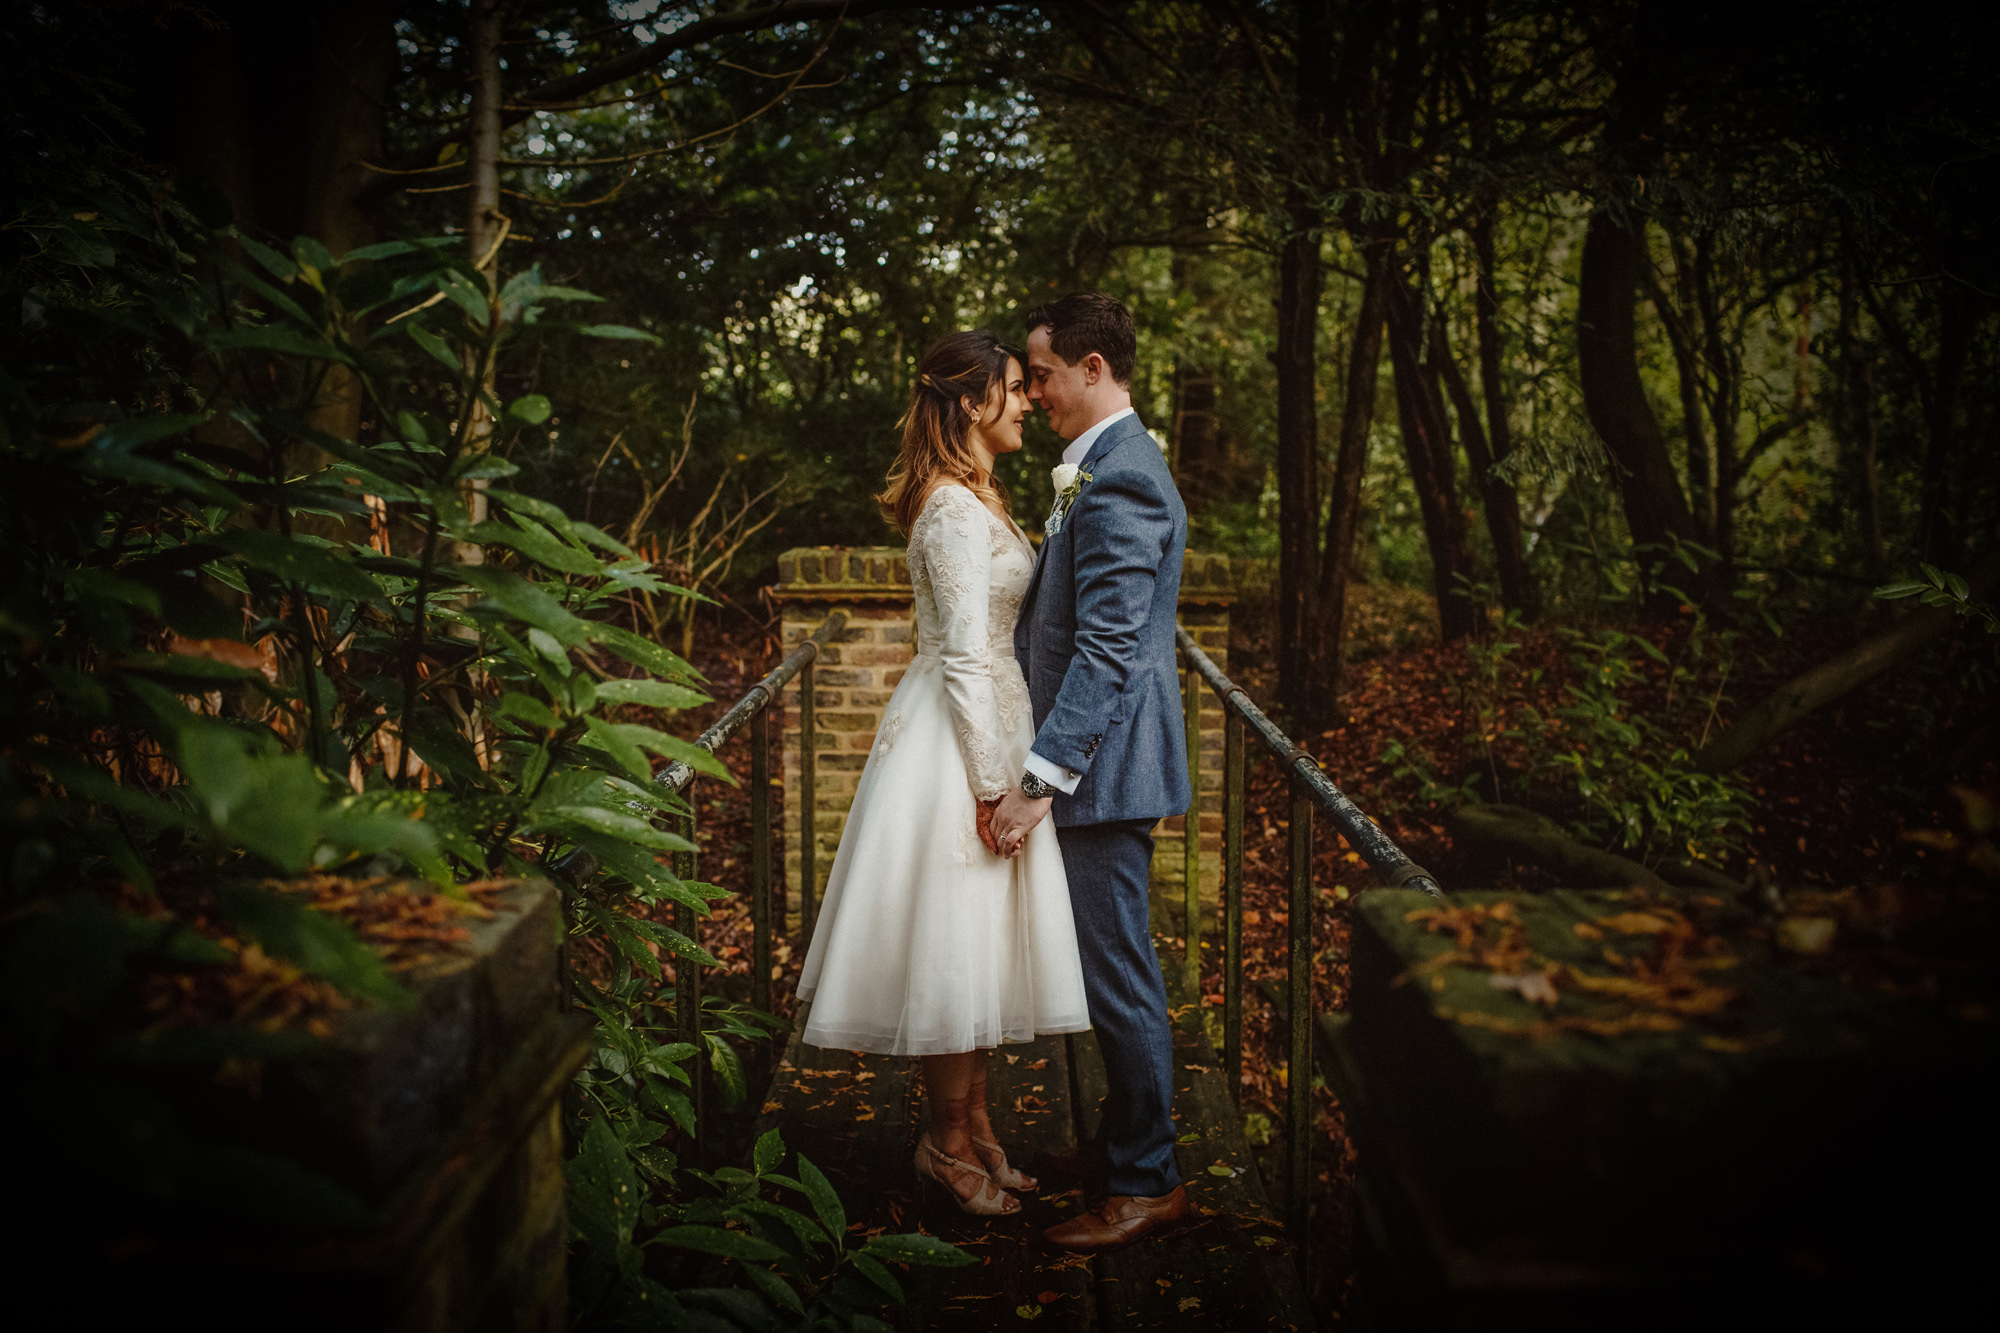 Nose to nose couple portrait in wooded setting - photo by Tomas Juskaitis Photography